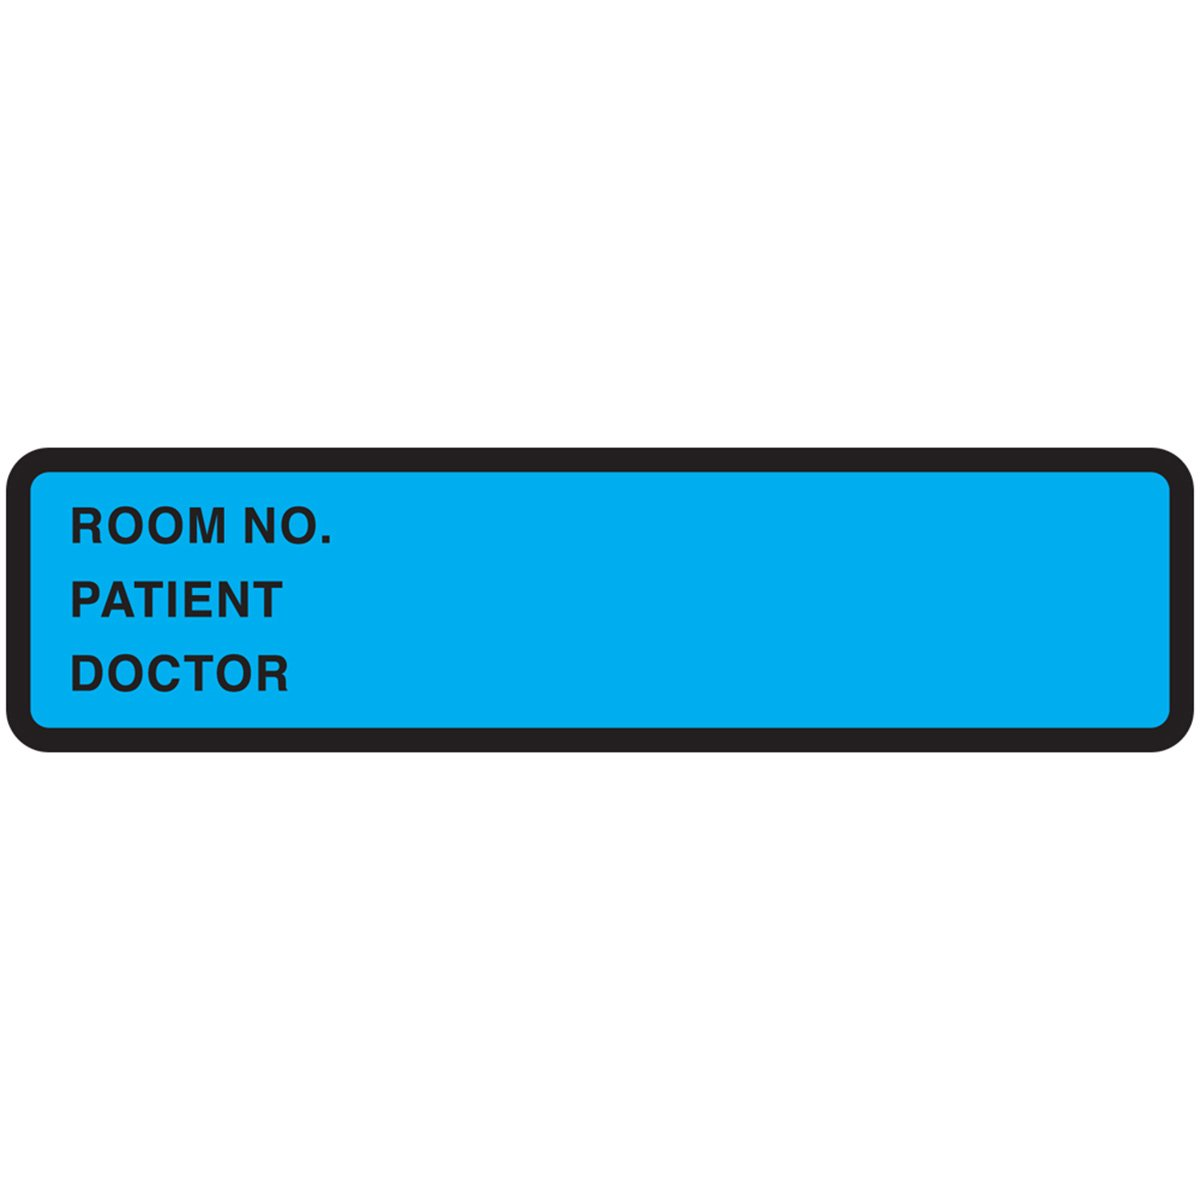 PDC Healthcare 59704843 Binder/Chart Label Paper, Removable Room No. Patient, 5 3/8 x 1 3/8, Blue (Pack of 500)